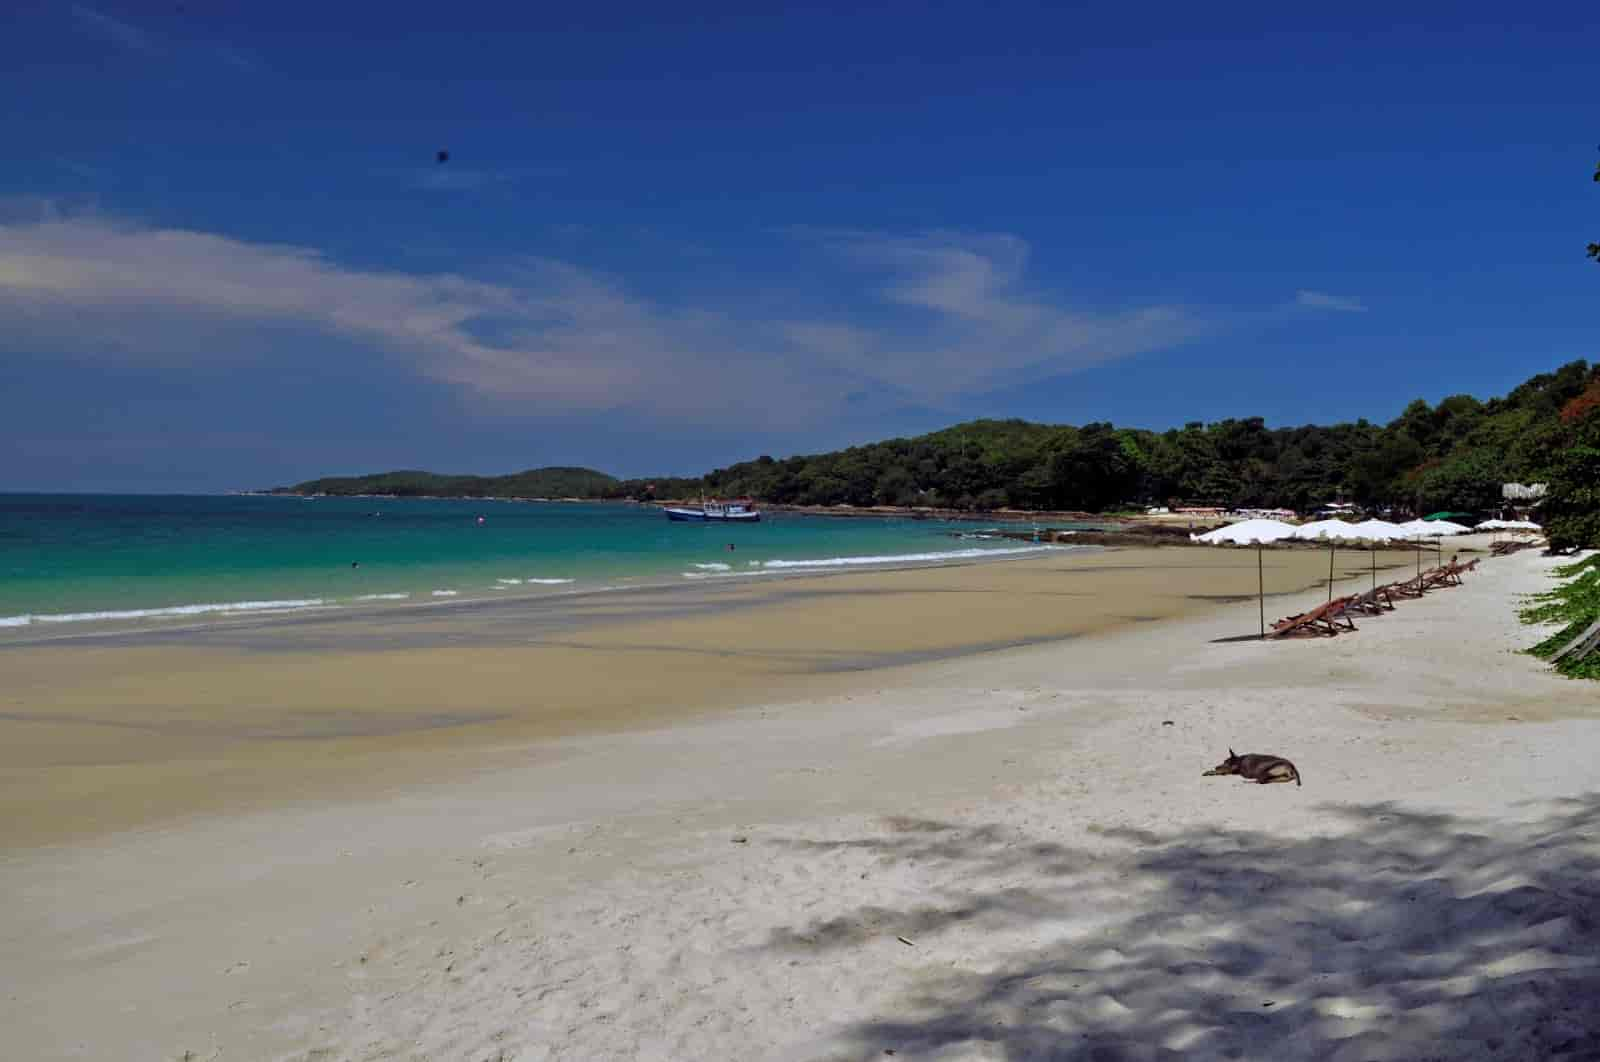 Koh Samet Beaches